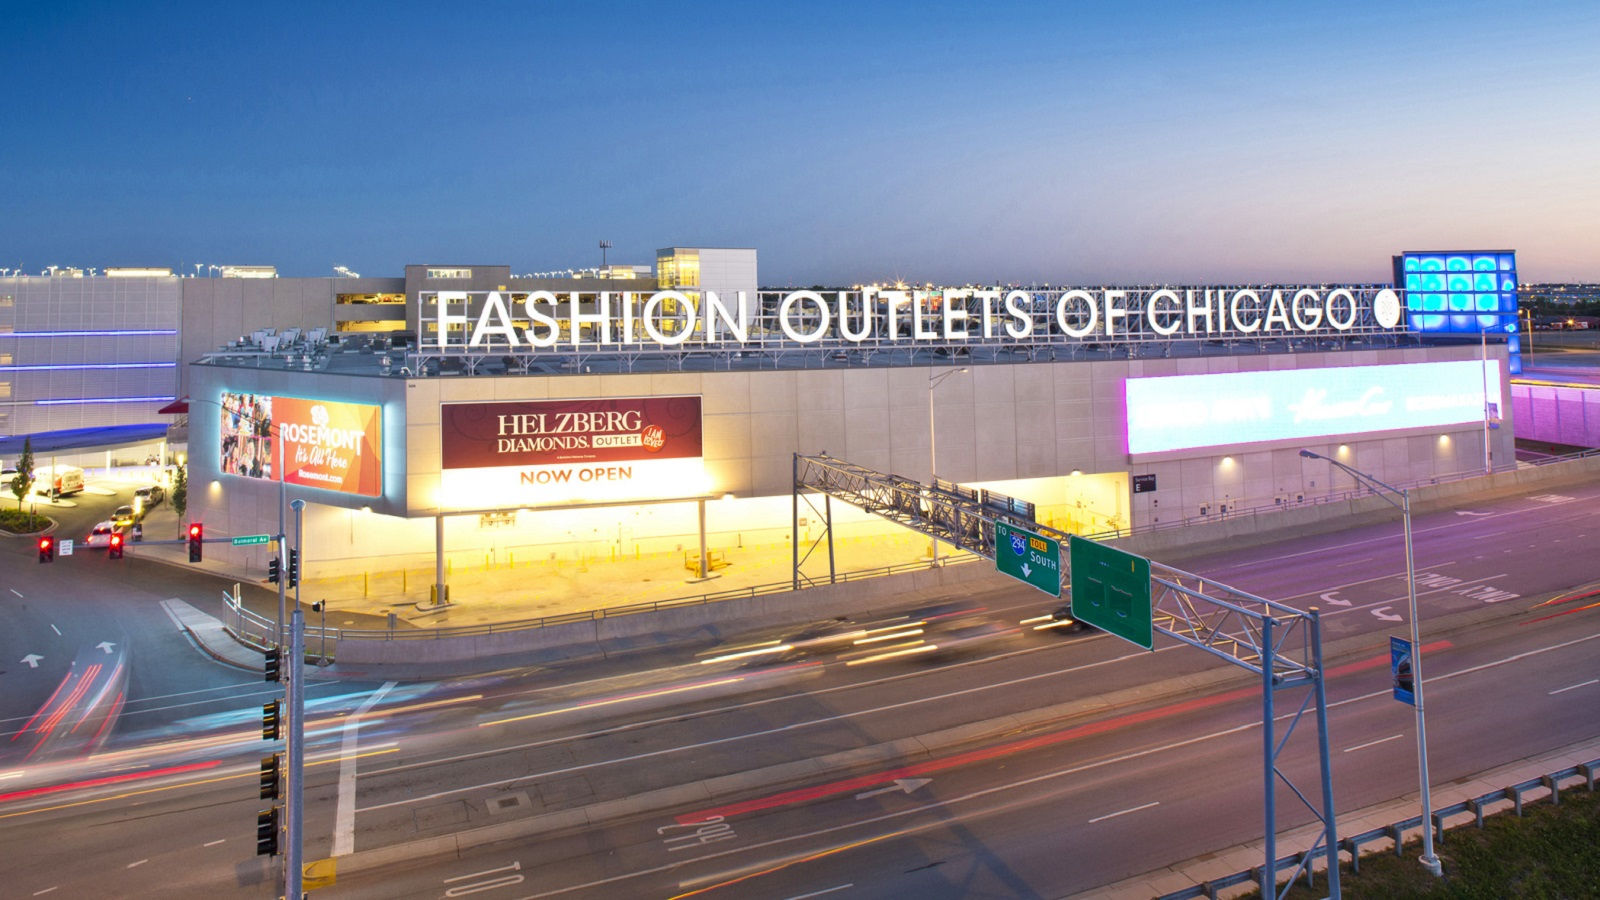 Things to do in Rosemont - Fashion Outlets of Chicago